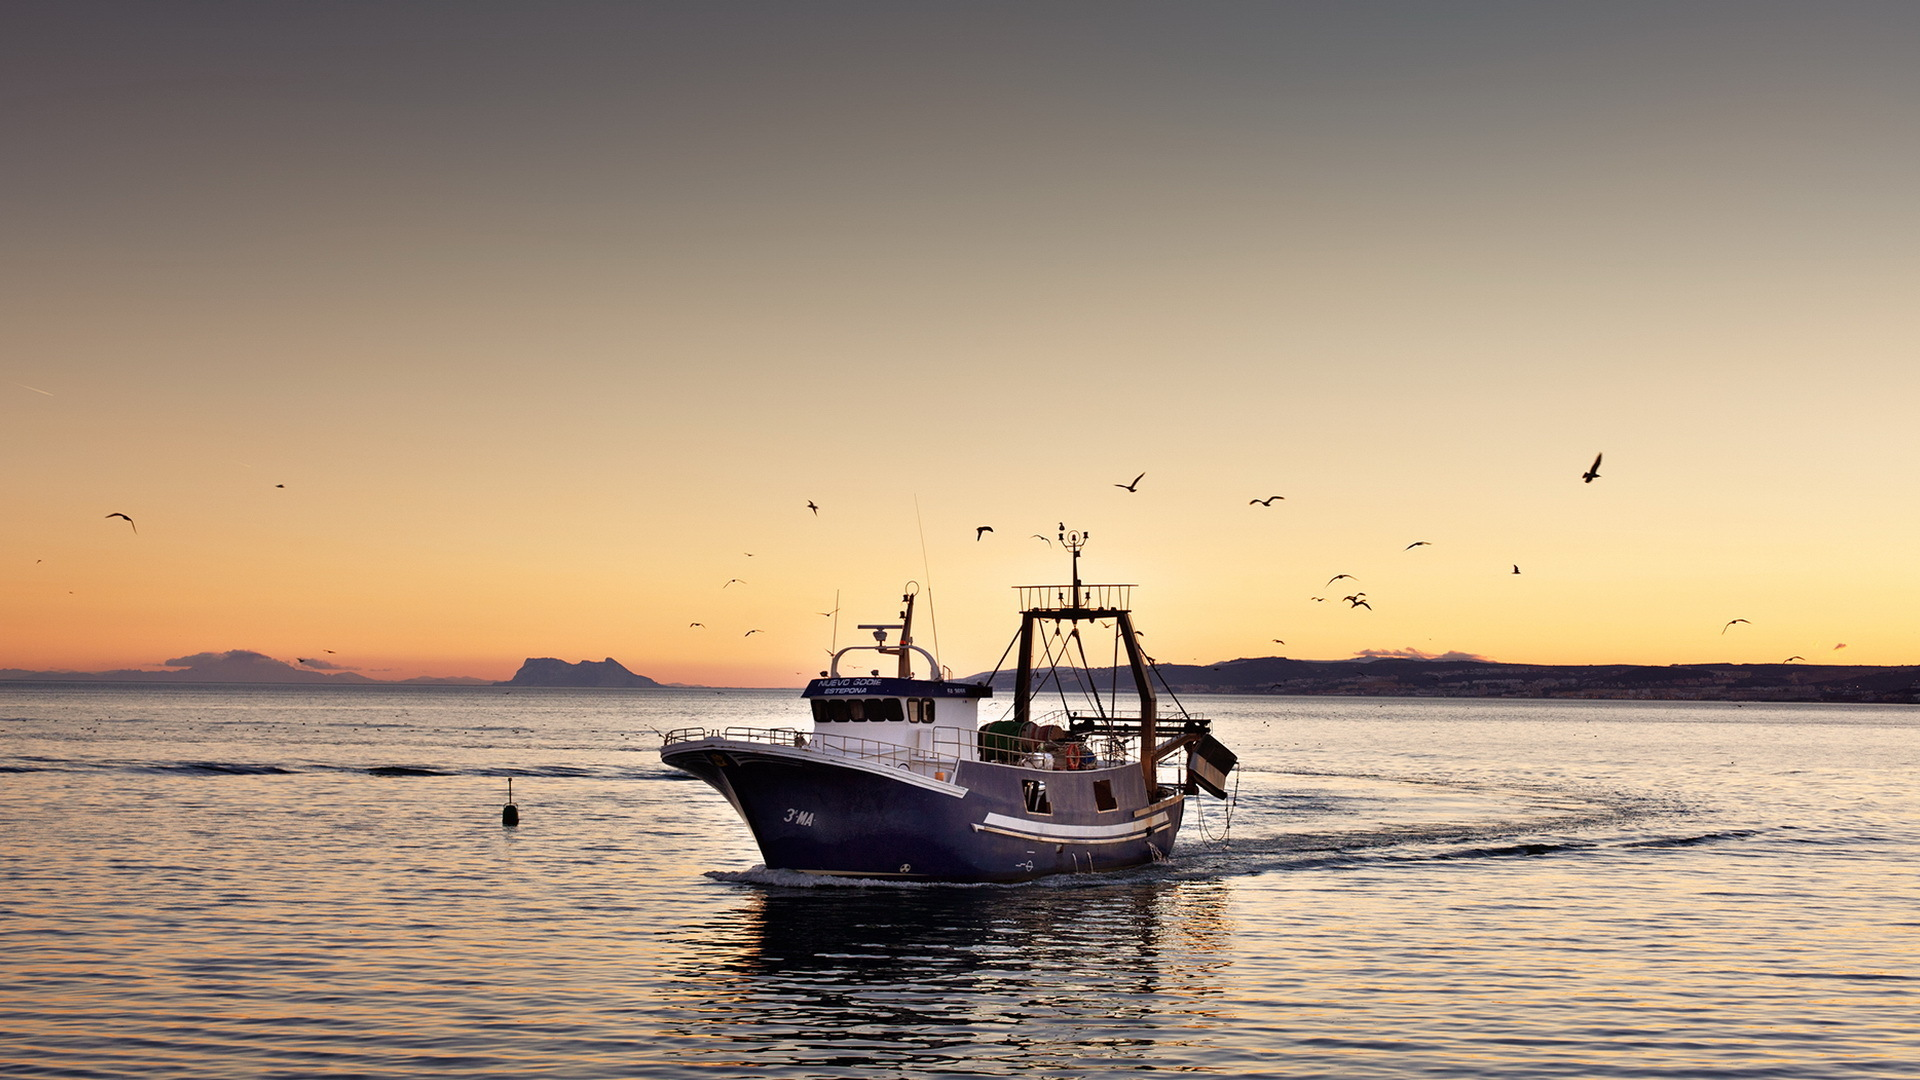 Fishing Boat Wallpaper 41865 1920x1080 px HDWallSourcecom 1920x1080